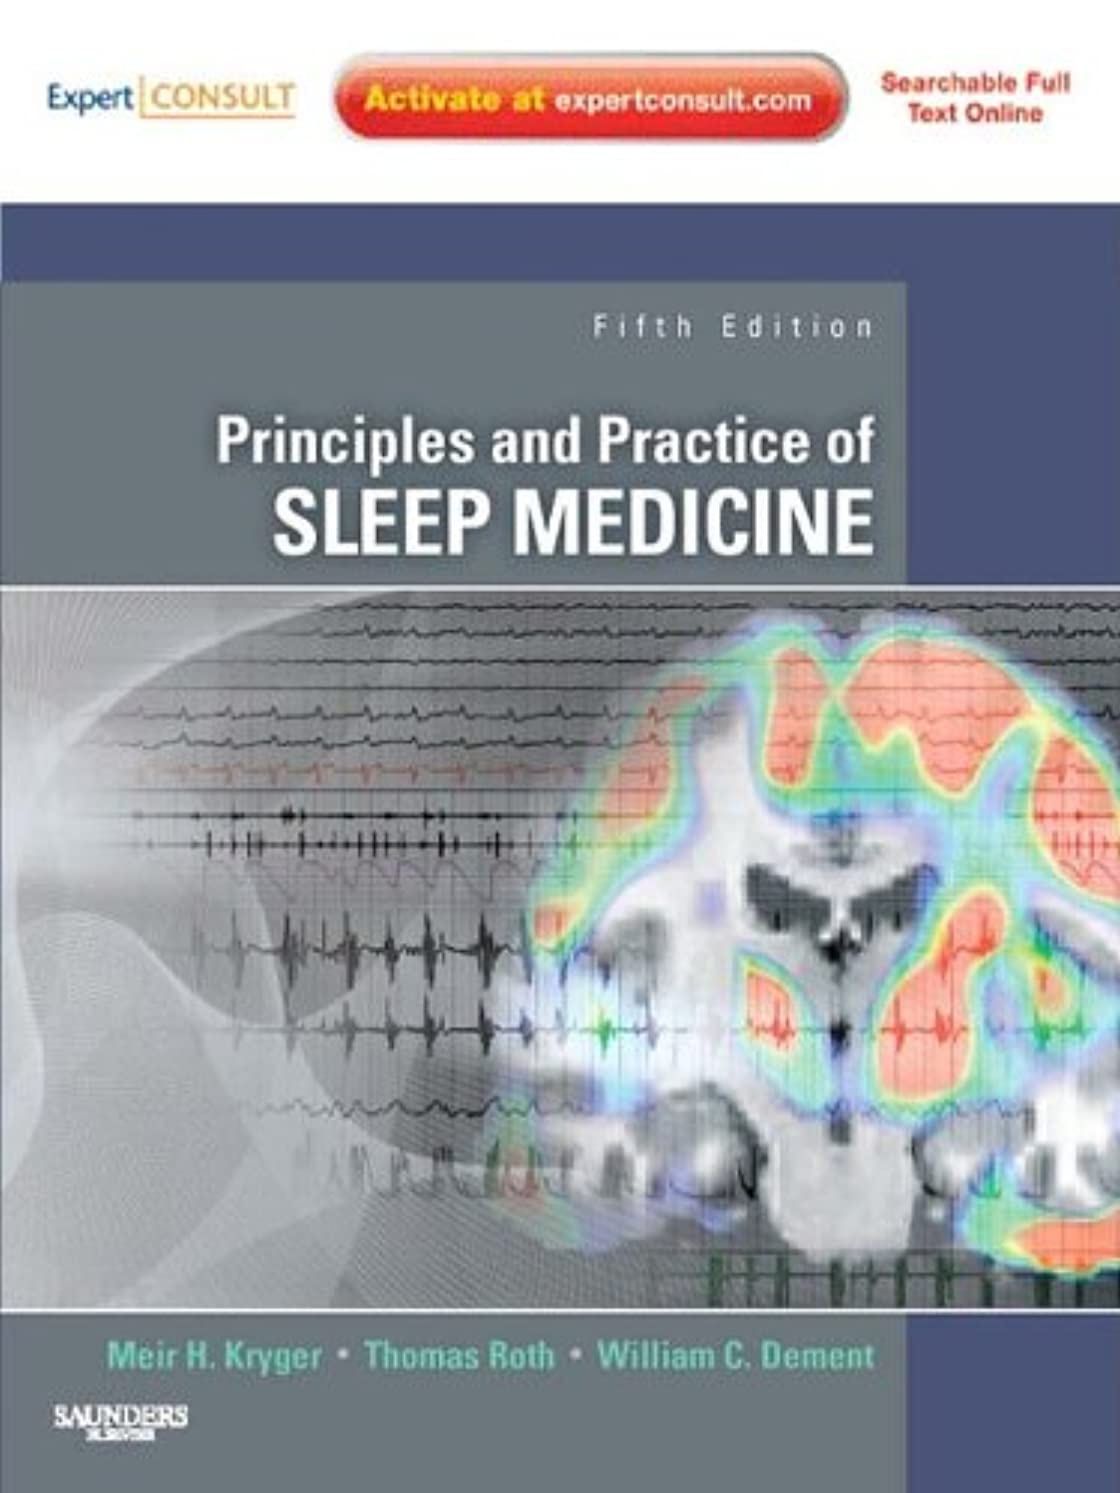 幻滅する賛美歌足首Principles and Practice of Sleep Medicine - E-Book: Expert Consult Premium Edition - Enhanced Online Features (English Edition)